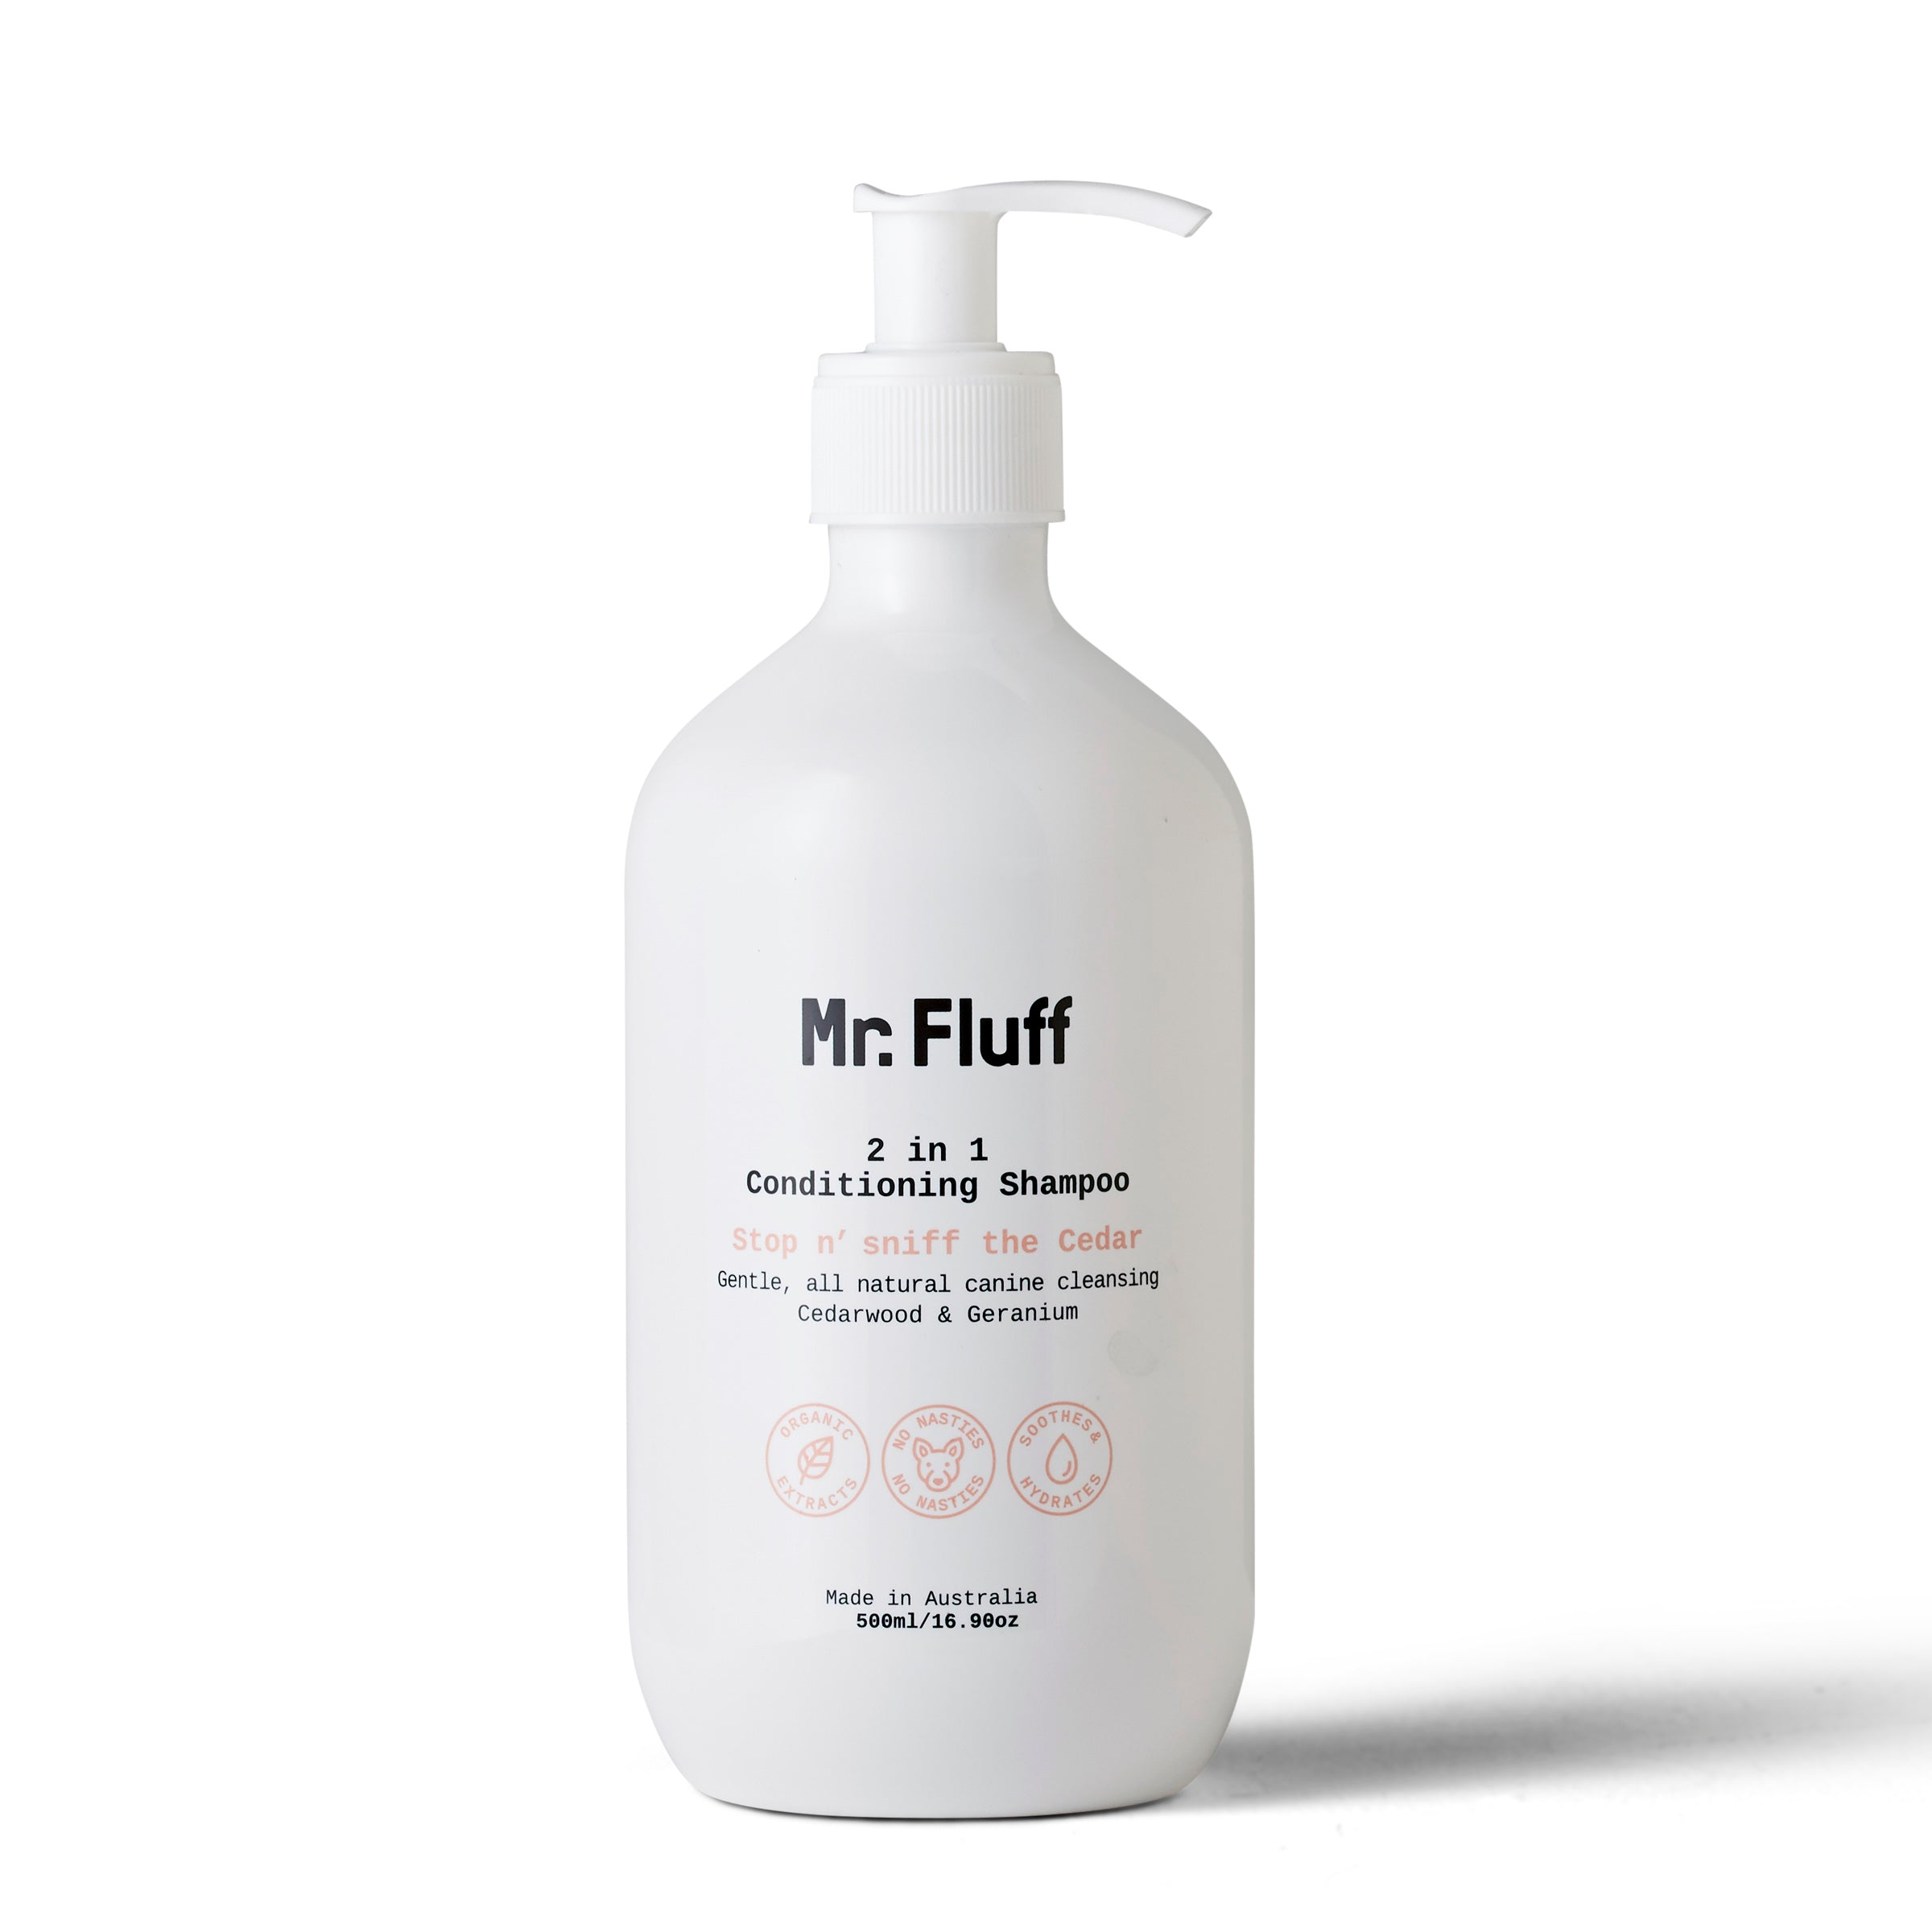 All Natural Vegan Dog Shampoo Mr.Fluff - Cedarwood & Geranium